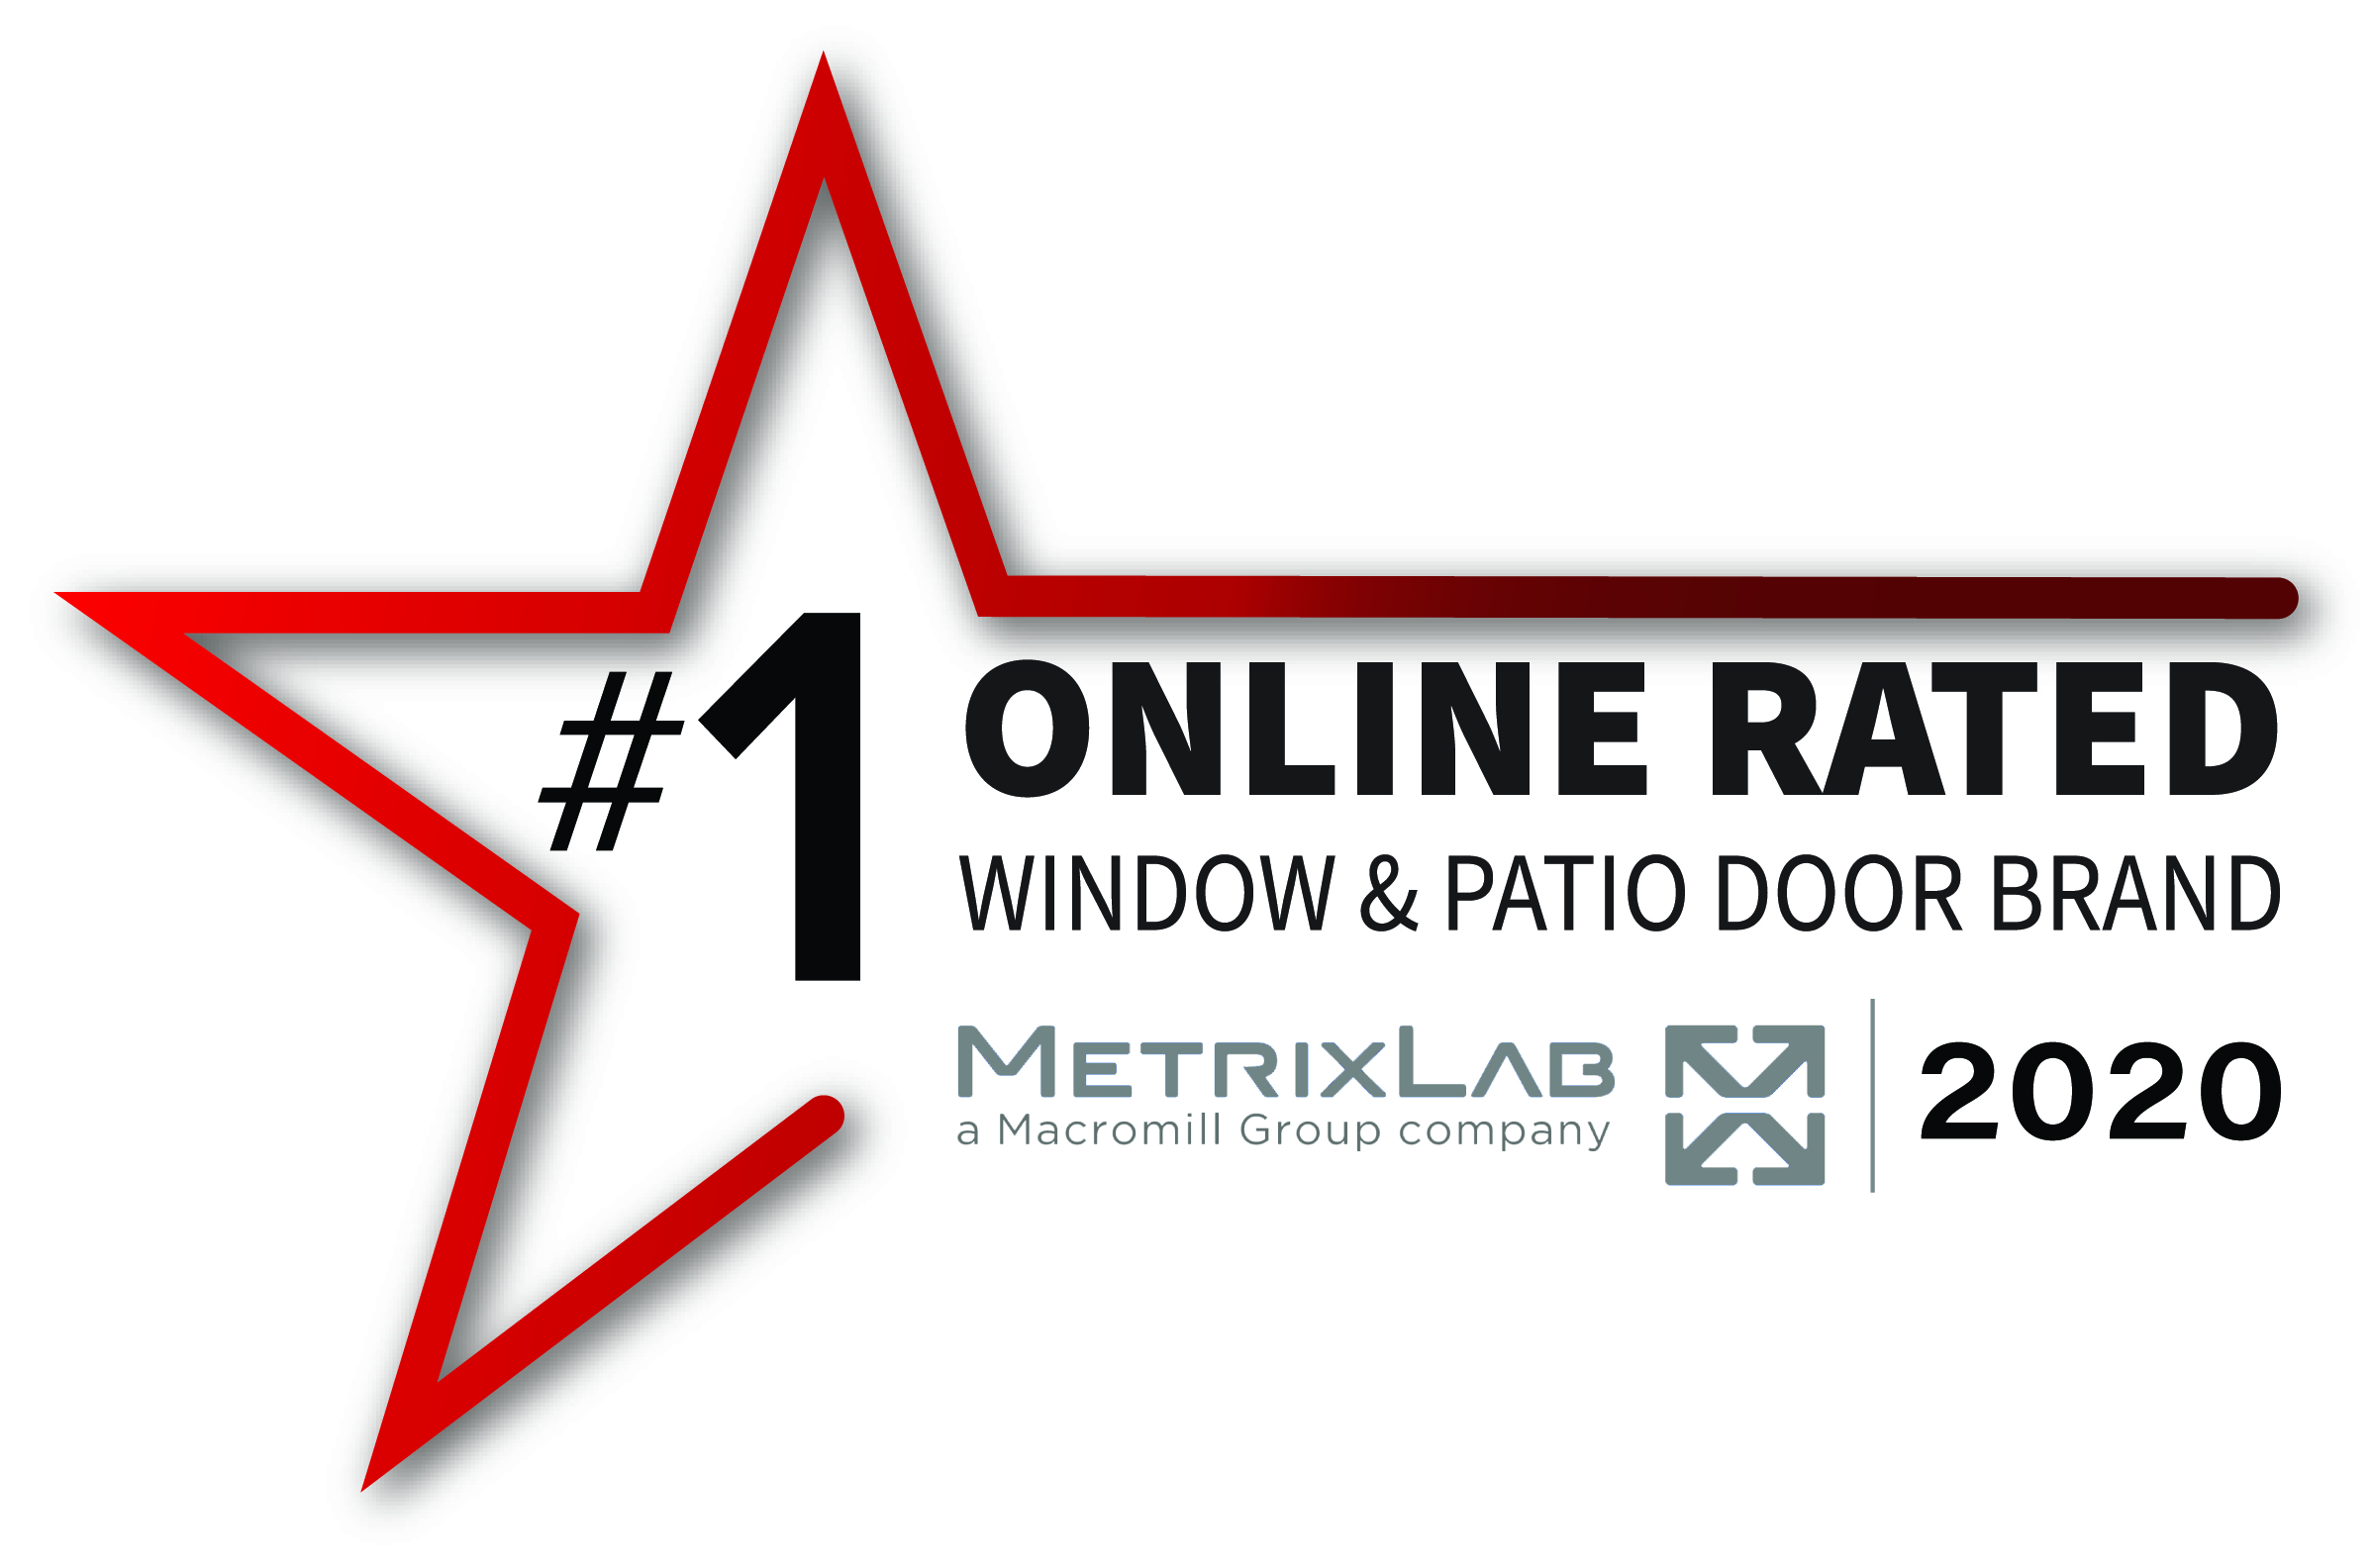 Highest Online Rated Brand